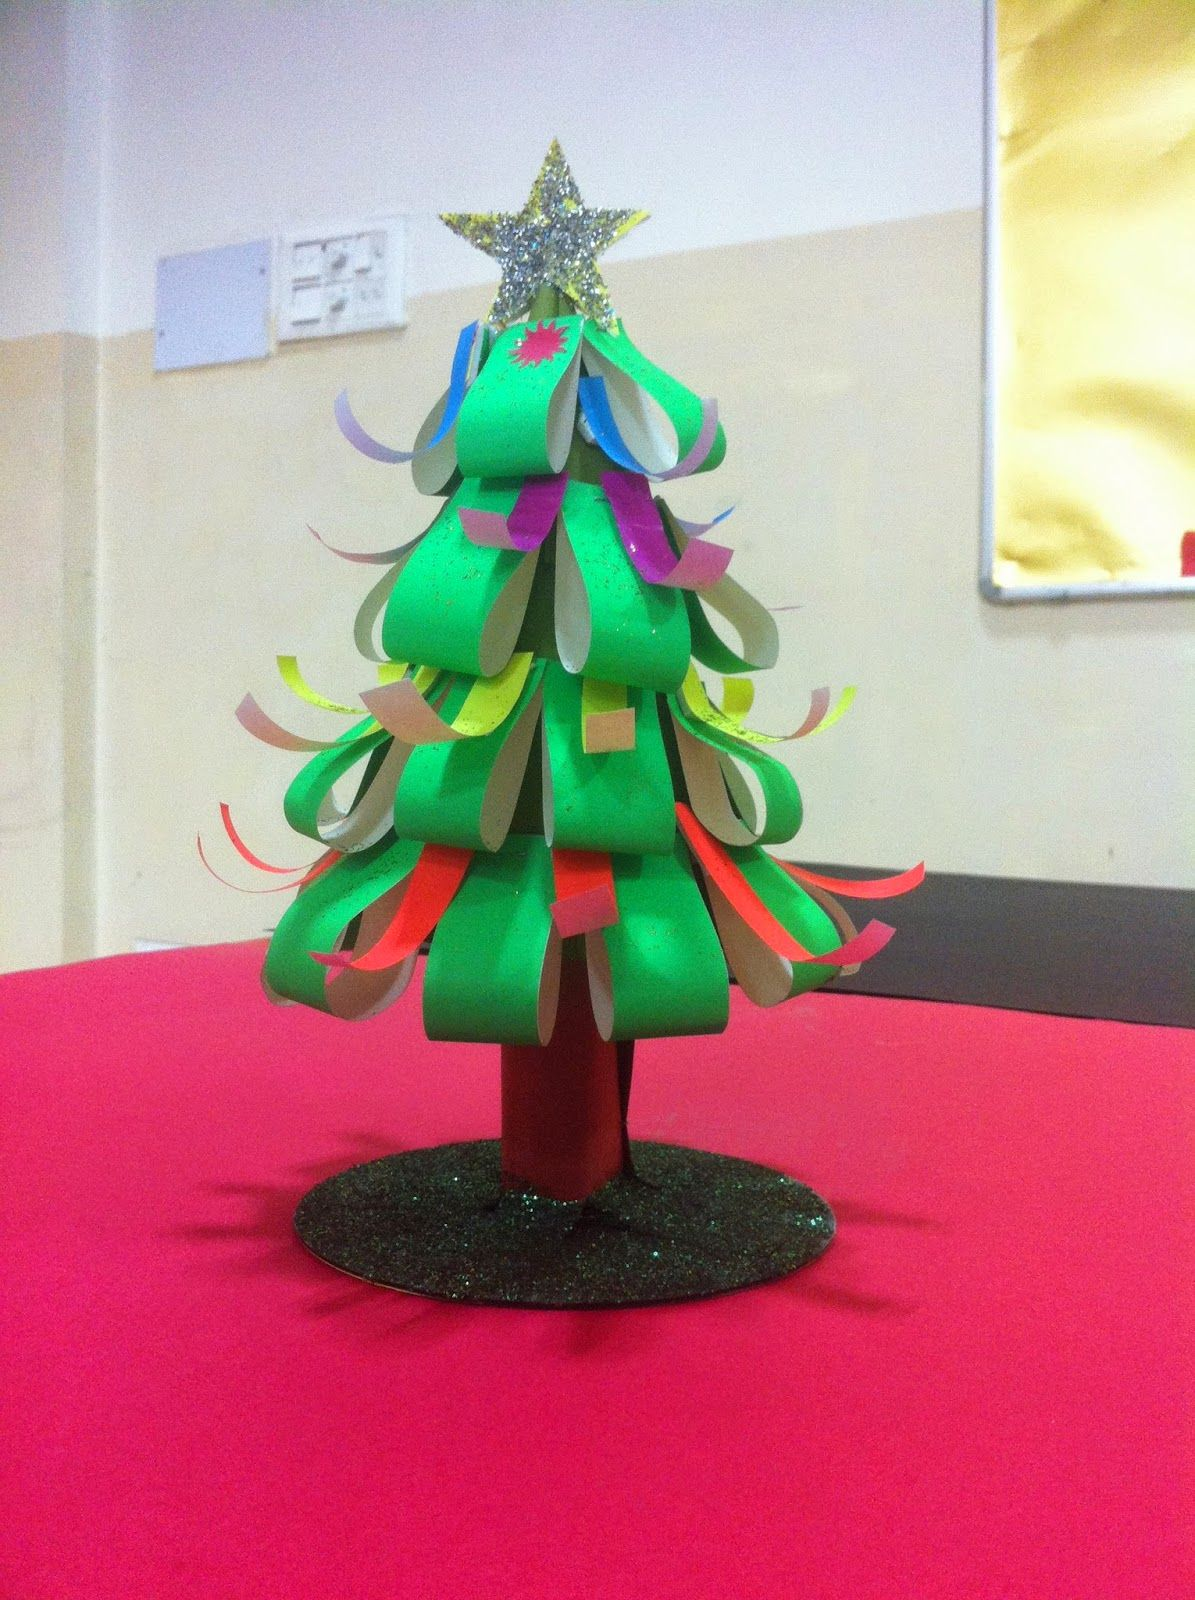 Art craft ideas and bulletin boards for elementary schools vegetable - Art Craft Ideas And Bulletin Boards For Elementary Schools Easy Christmas Craft Christmas